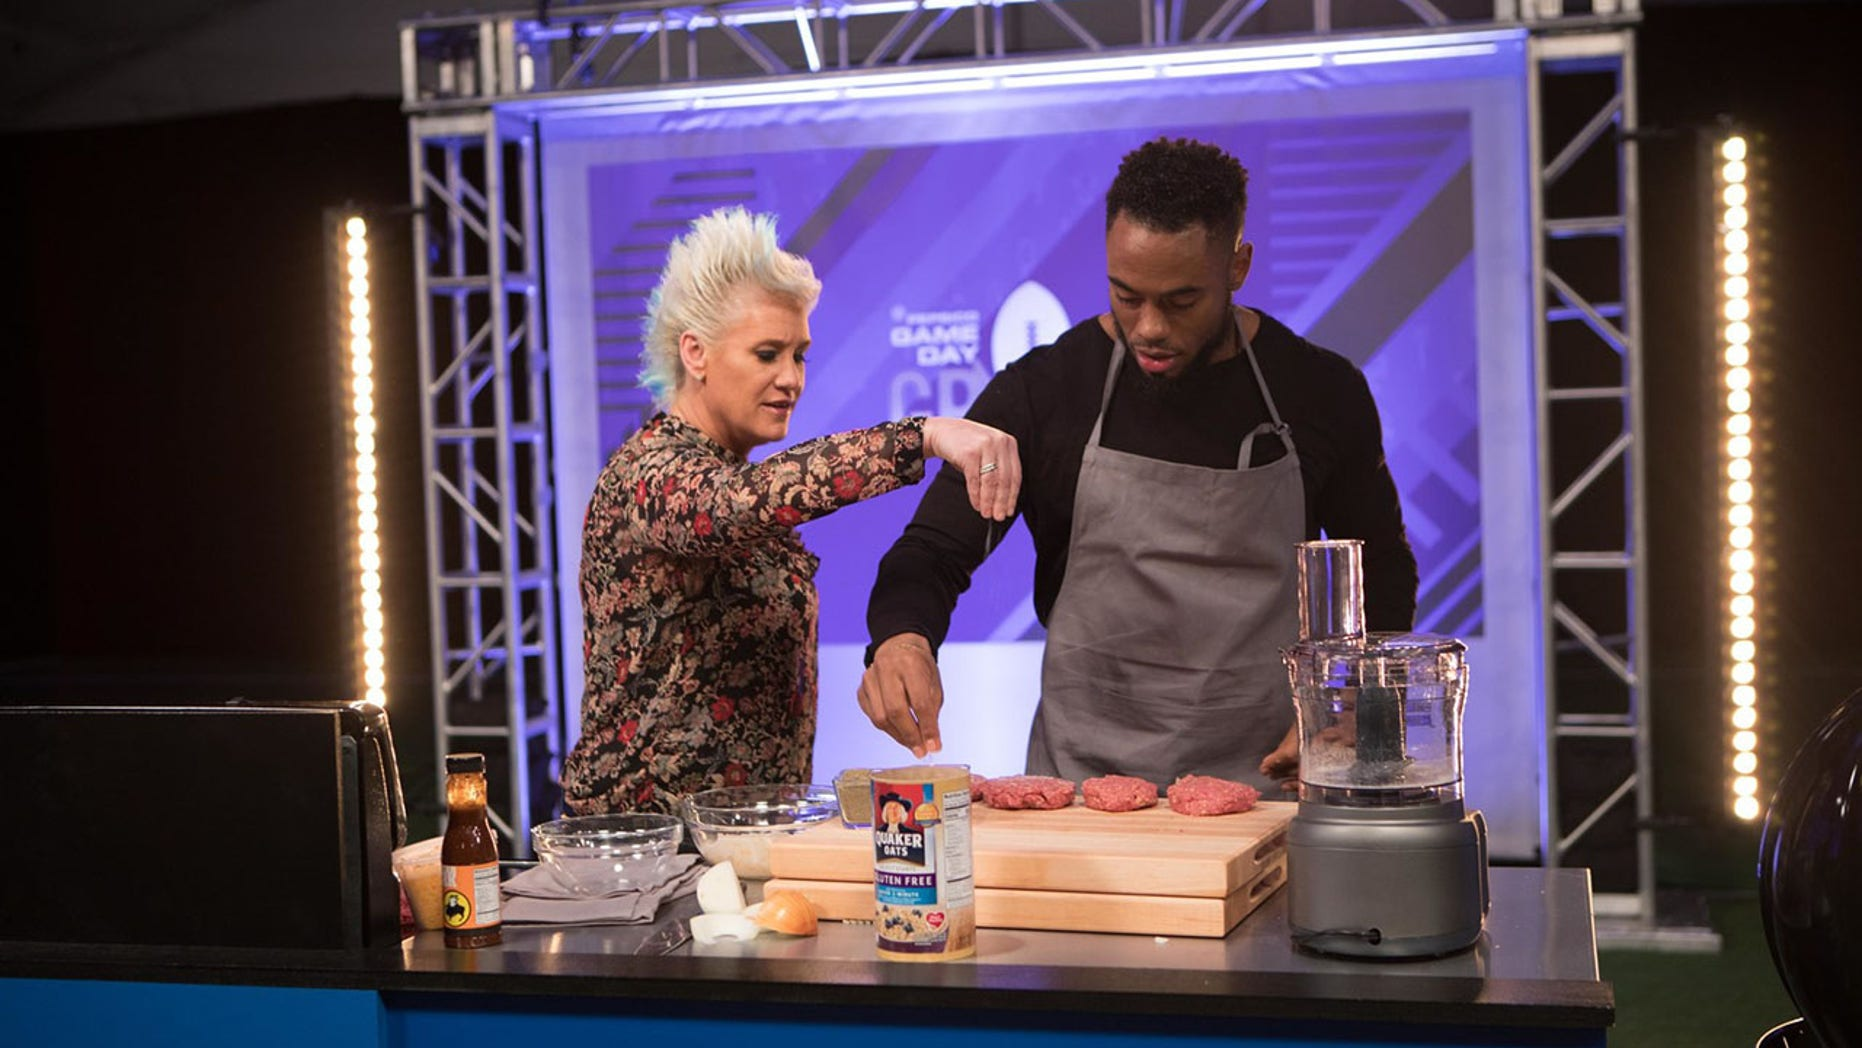 Anne Burrell shares her four tips to making your Super Bowl party fun and flavorful.